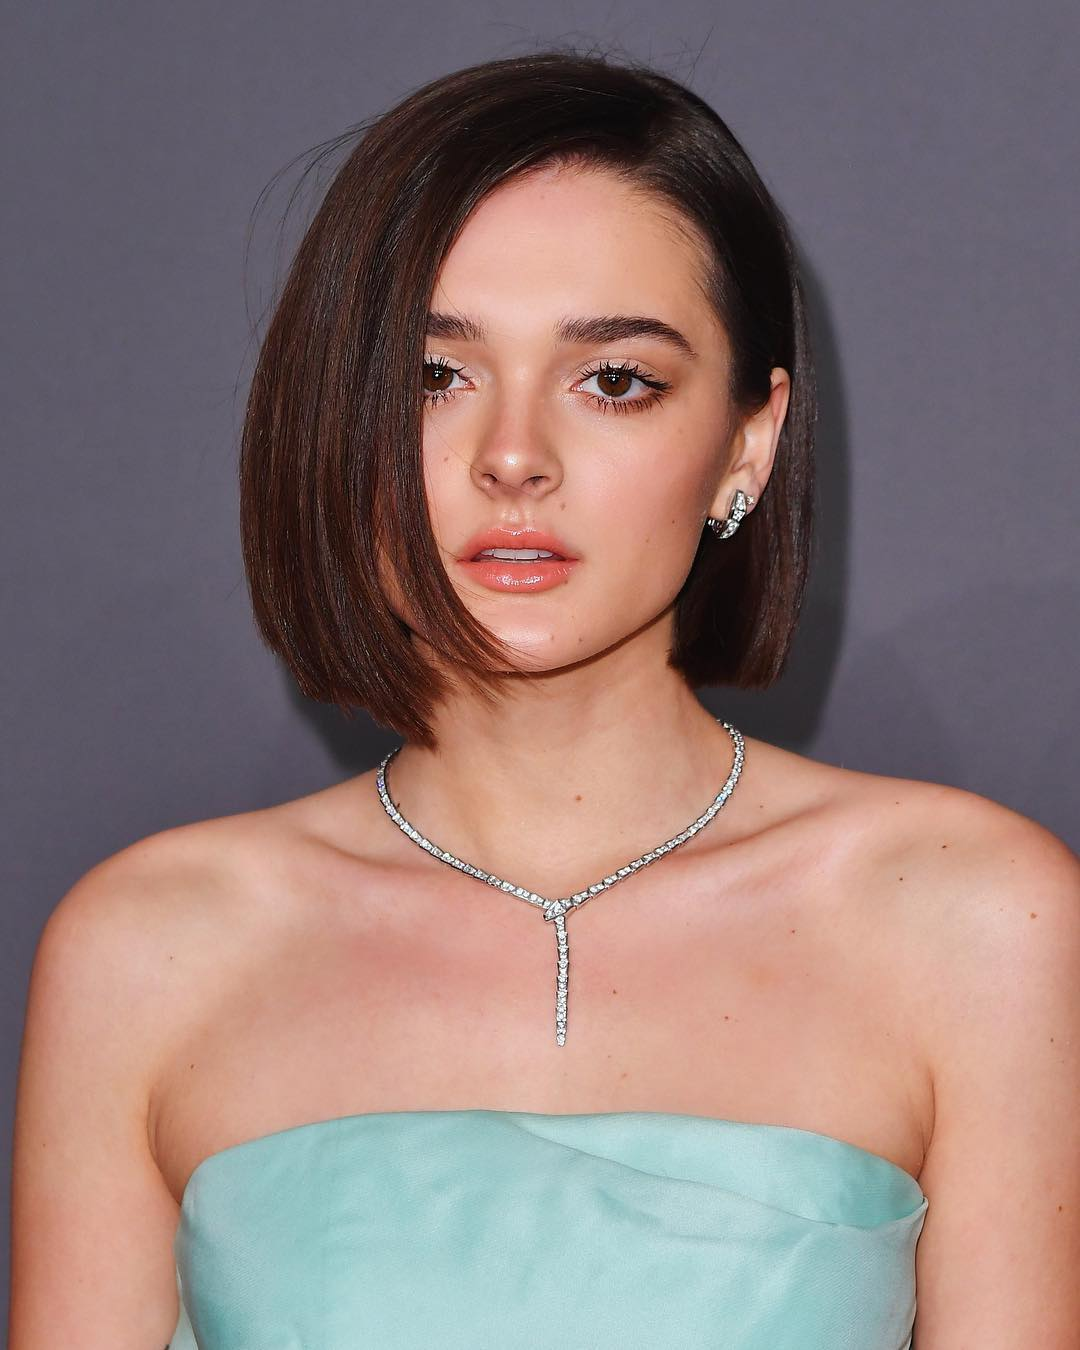 Charlotte Lawrence is wearing an elegant neck-piece and a light green tube dress